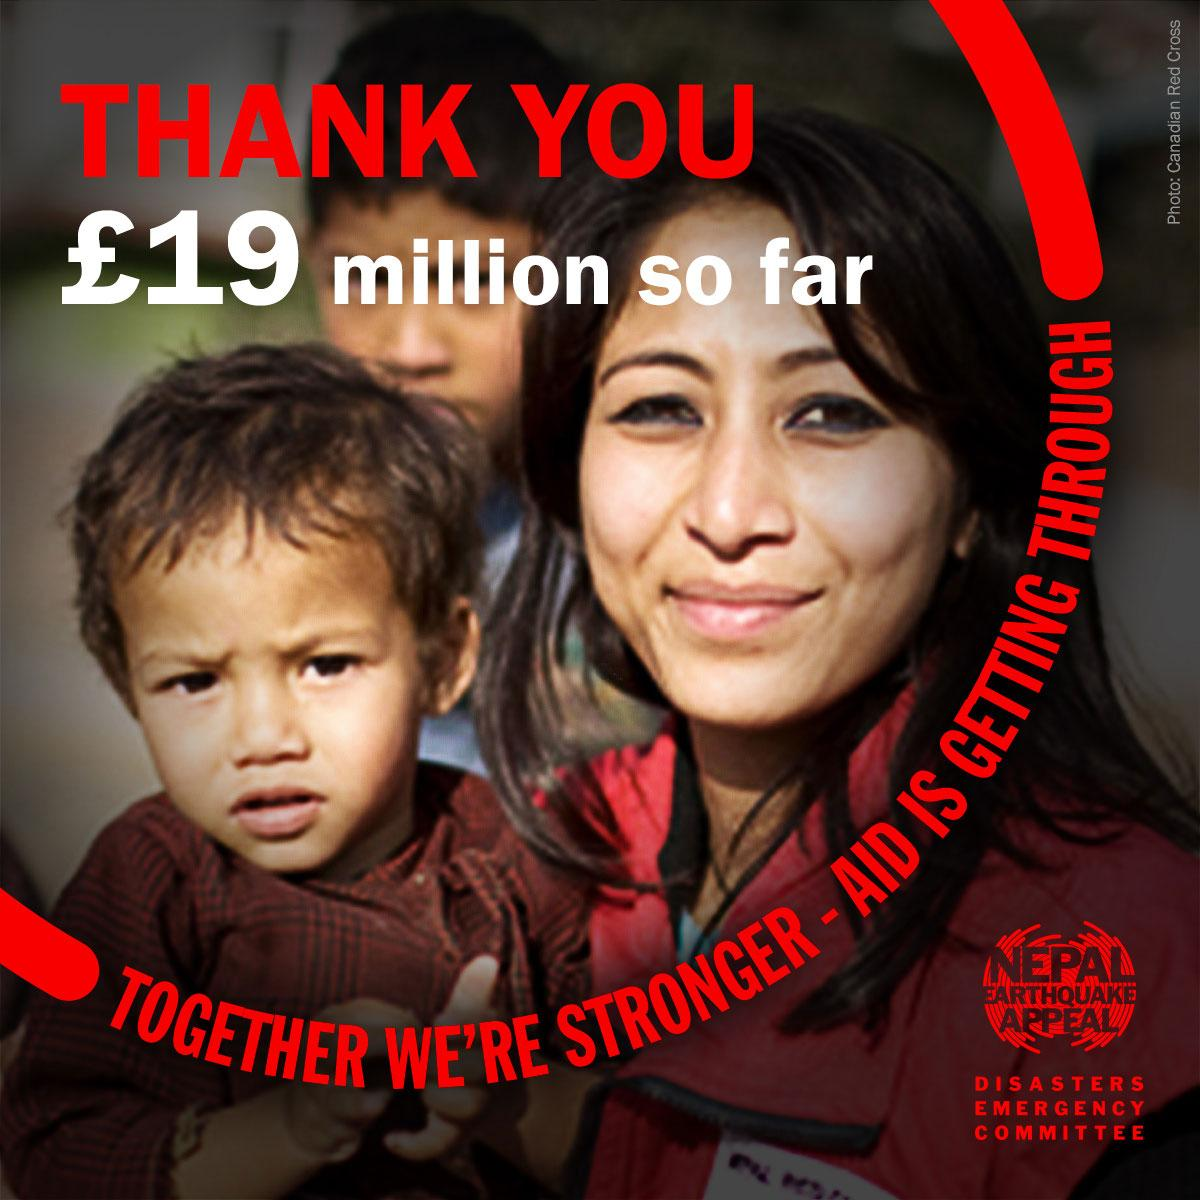 WOW! £19m raised already – thank you to everyone who has been so generous helping the survivors of #NepalQuake http://t.co/JUXPlzCD26